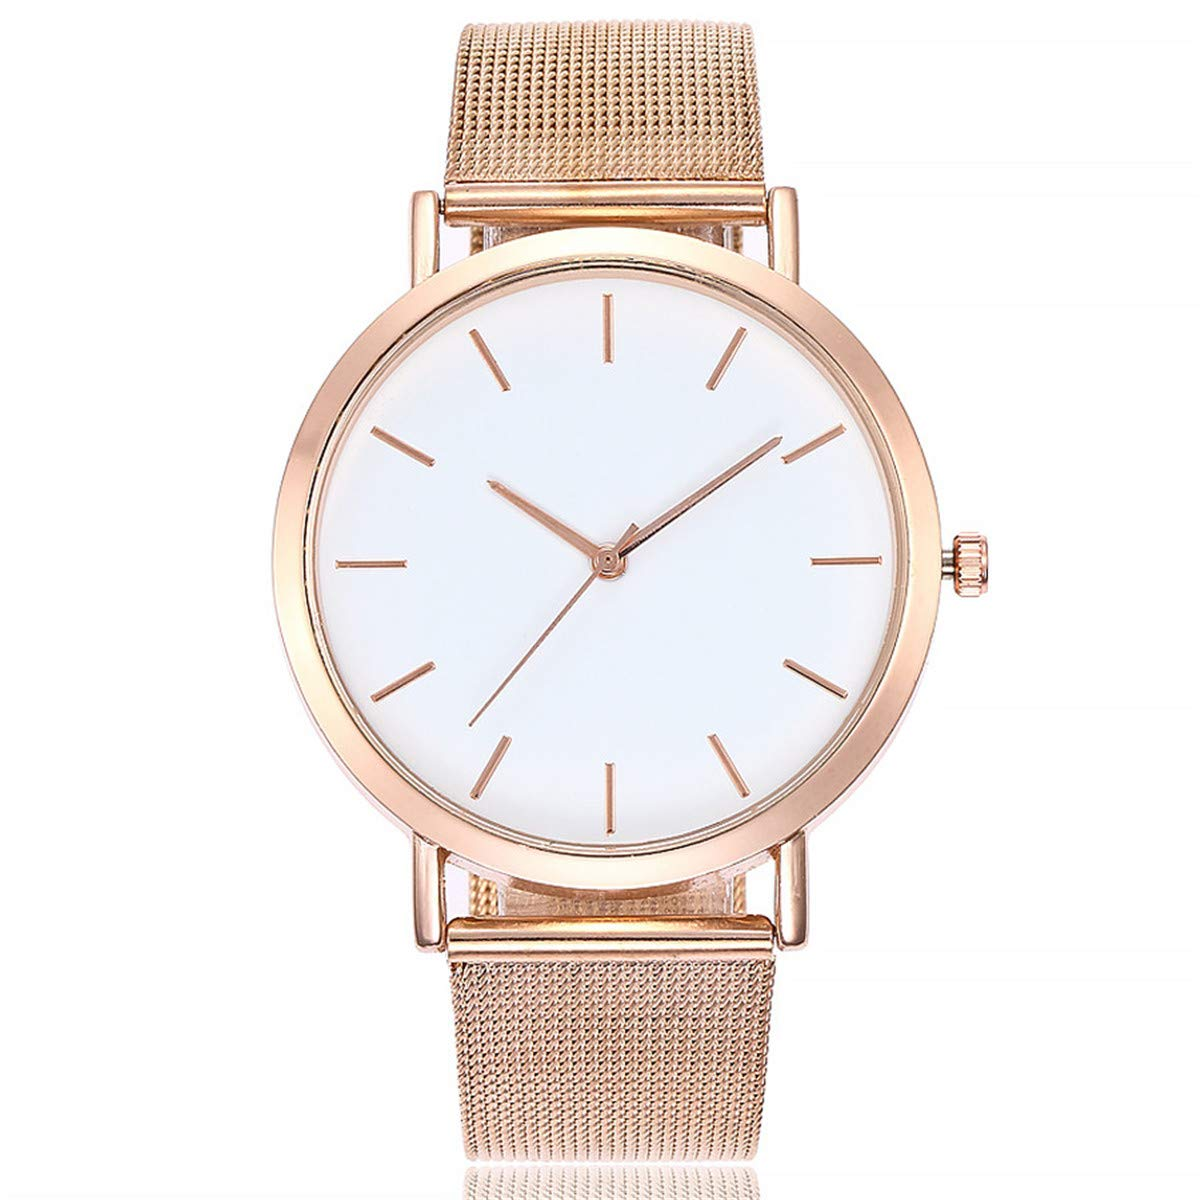 Fainosmny Womens Watch Fashion Jewelry Watch for Girls Stainless Steel Band Watch Casual Quartz Watch Analog Wrist Watch (Rose Gold, Free)